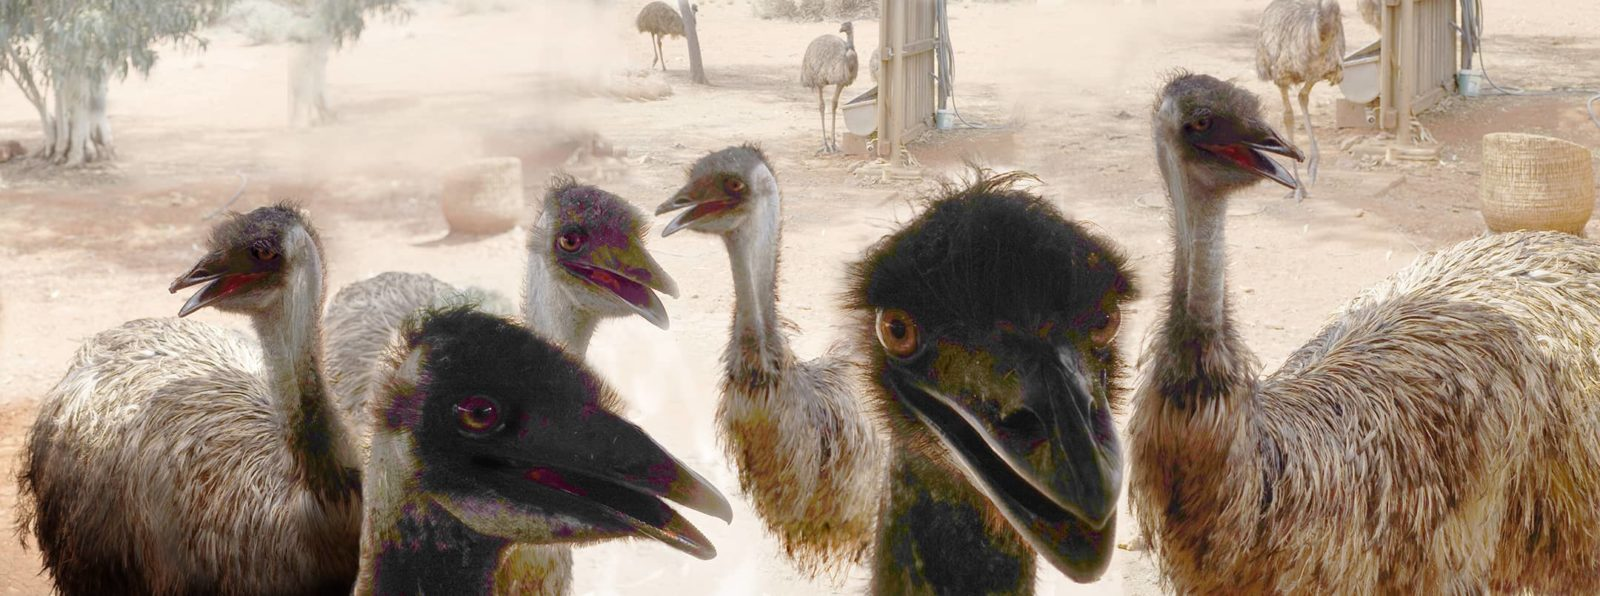 Robin Botie of Ithaca, New York, photoshops emus in Australia.